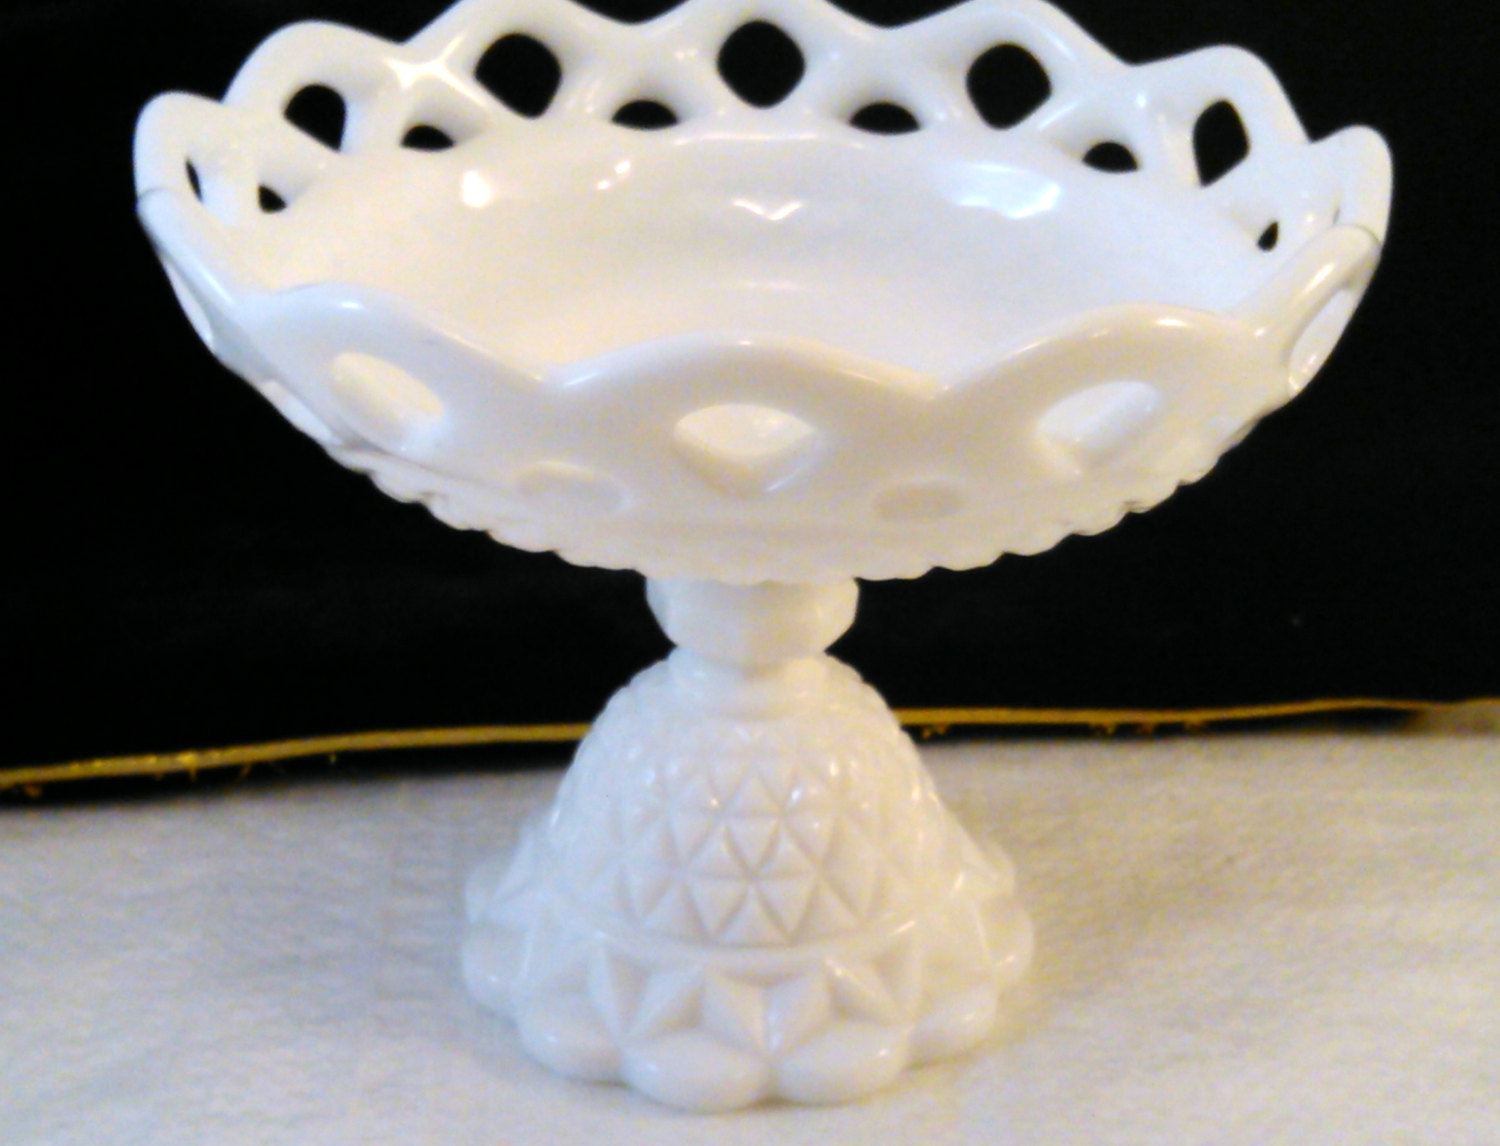 Imperial Milk Glass Pedestal Compote with Open Lace Edge